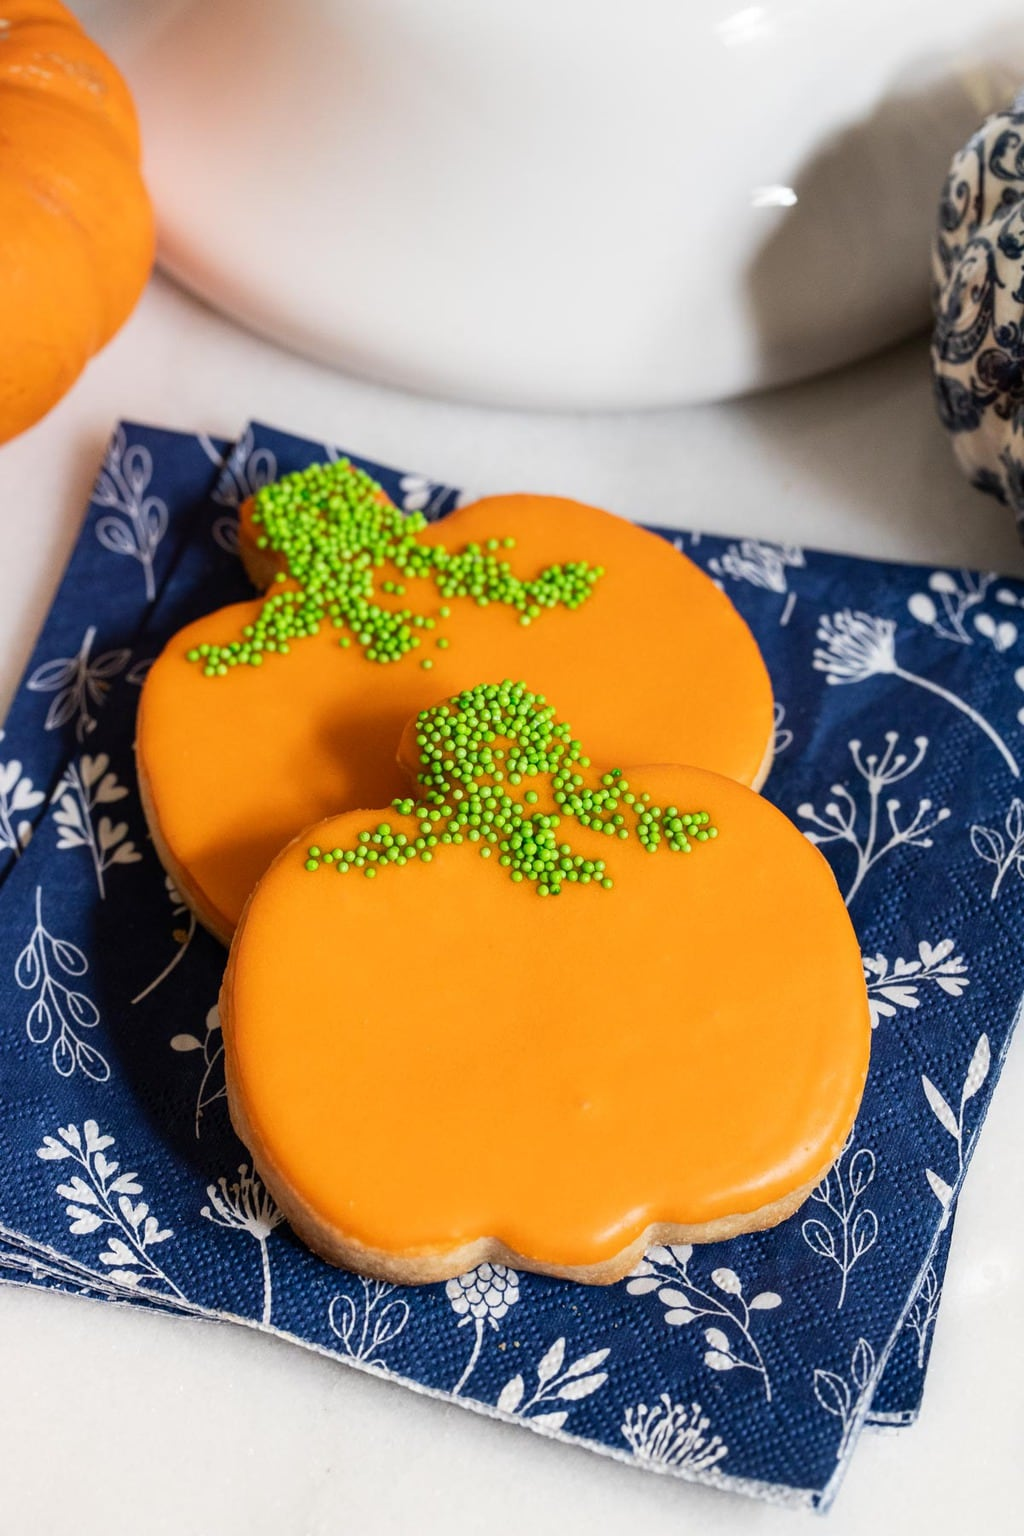 Vertical closeup photo of a pair of Irish Shortbread Pumpkin Patch Cookies on a navy and white patterned napkin.